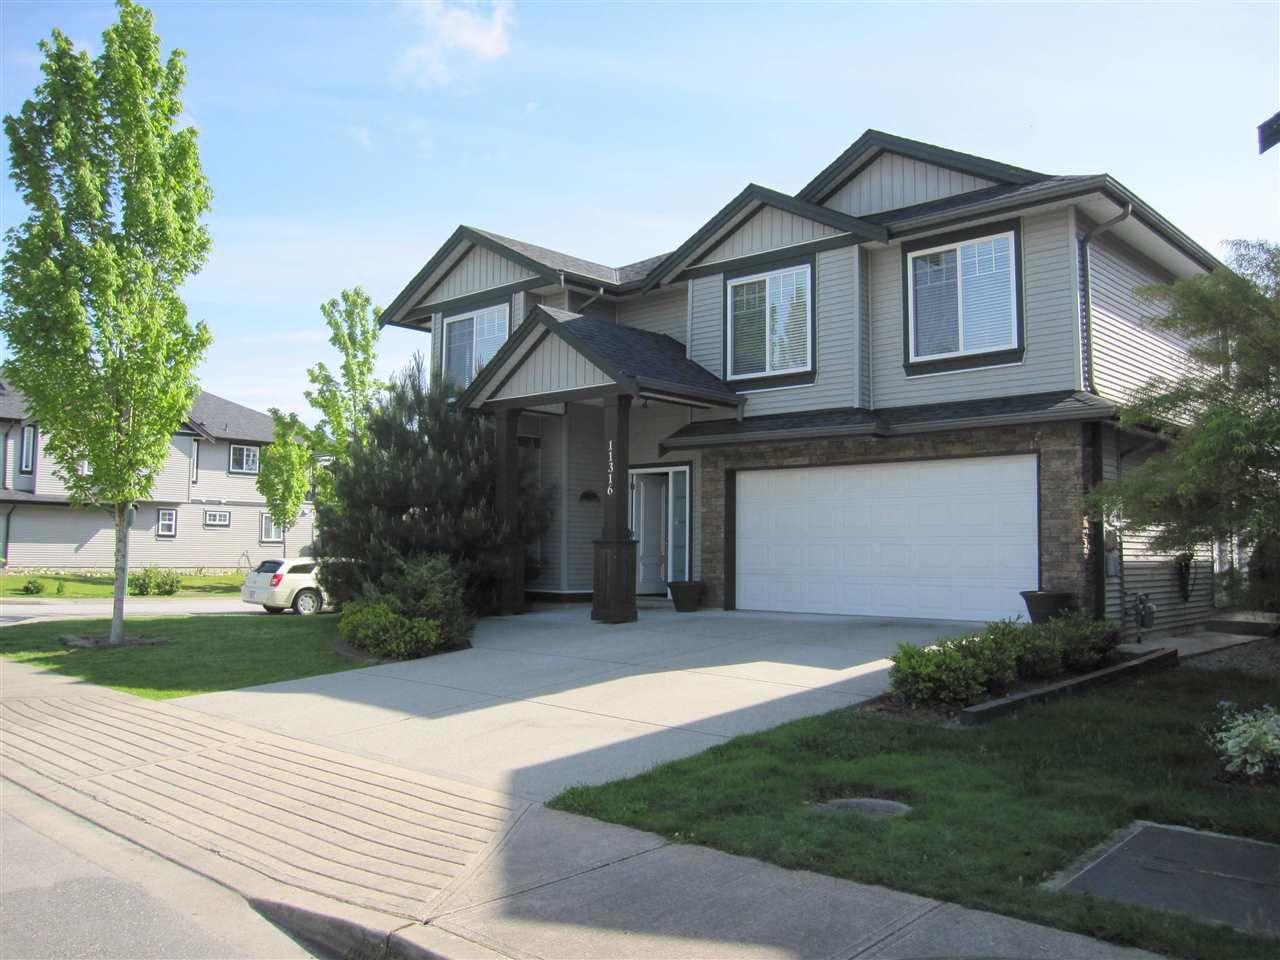 Main Photo: 11316 236 Street in Maple Ridge: Cottonwood MR House for sale : MLS®# R2062616